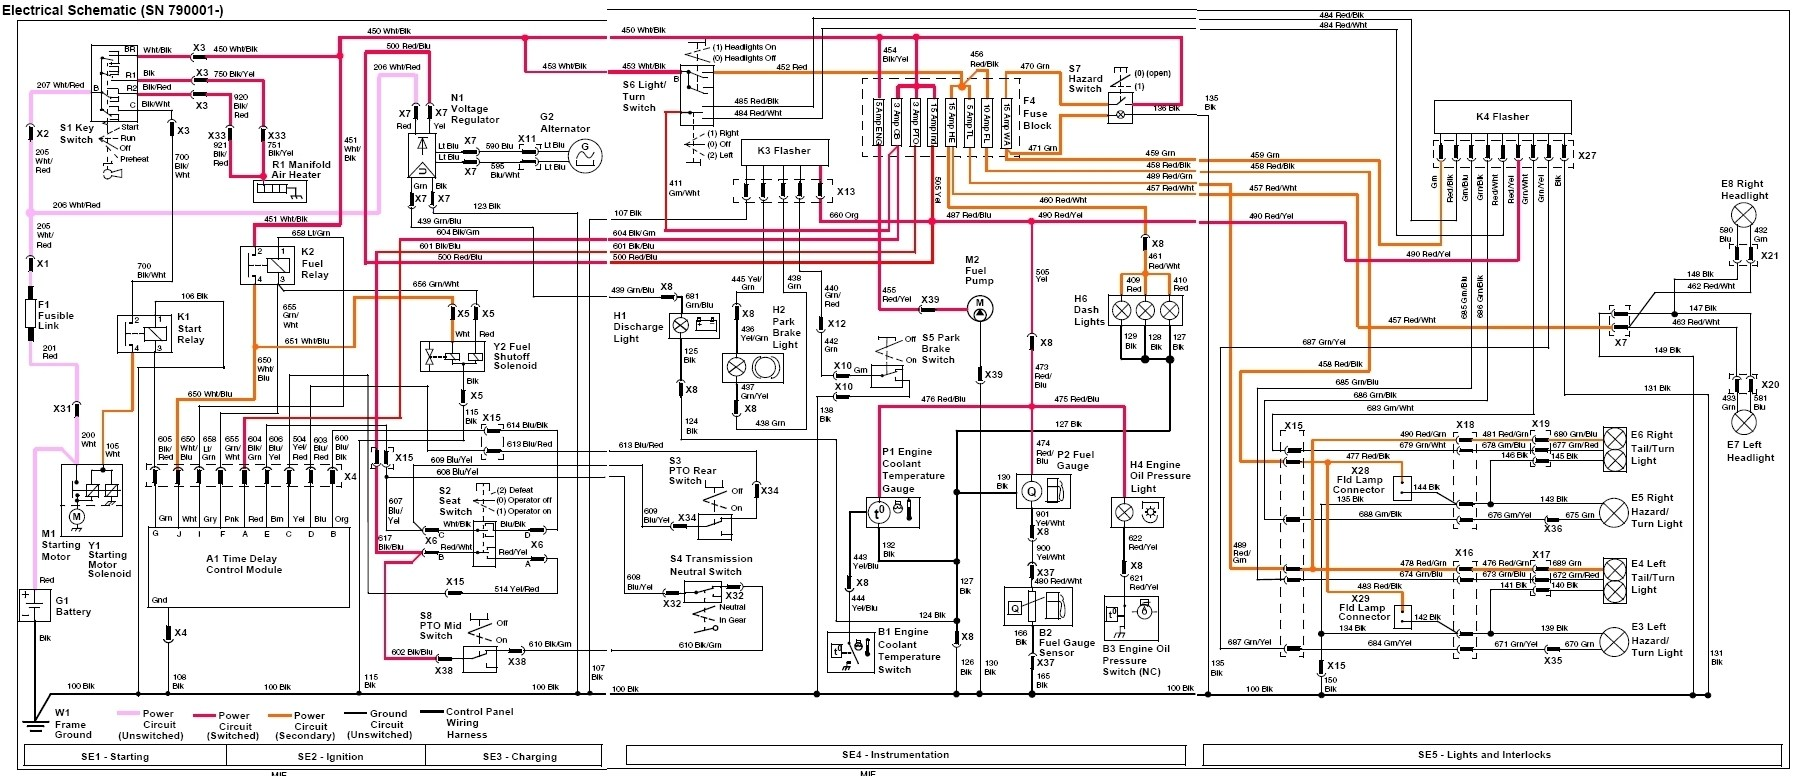 home wiring diagrams free jd 6300 wiring diagram pro wiring diagram  jd 6300 wiring diagram pro wiring diagram